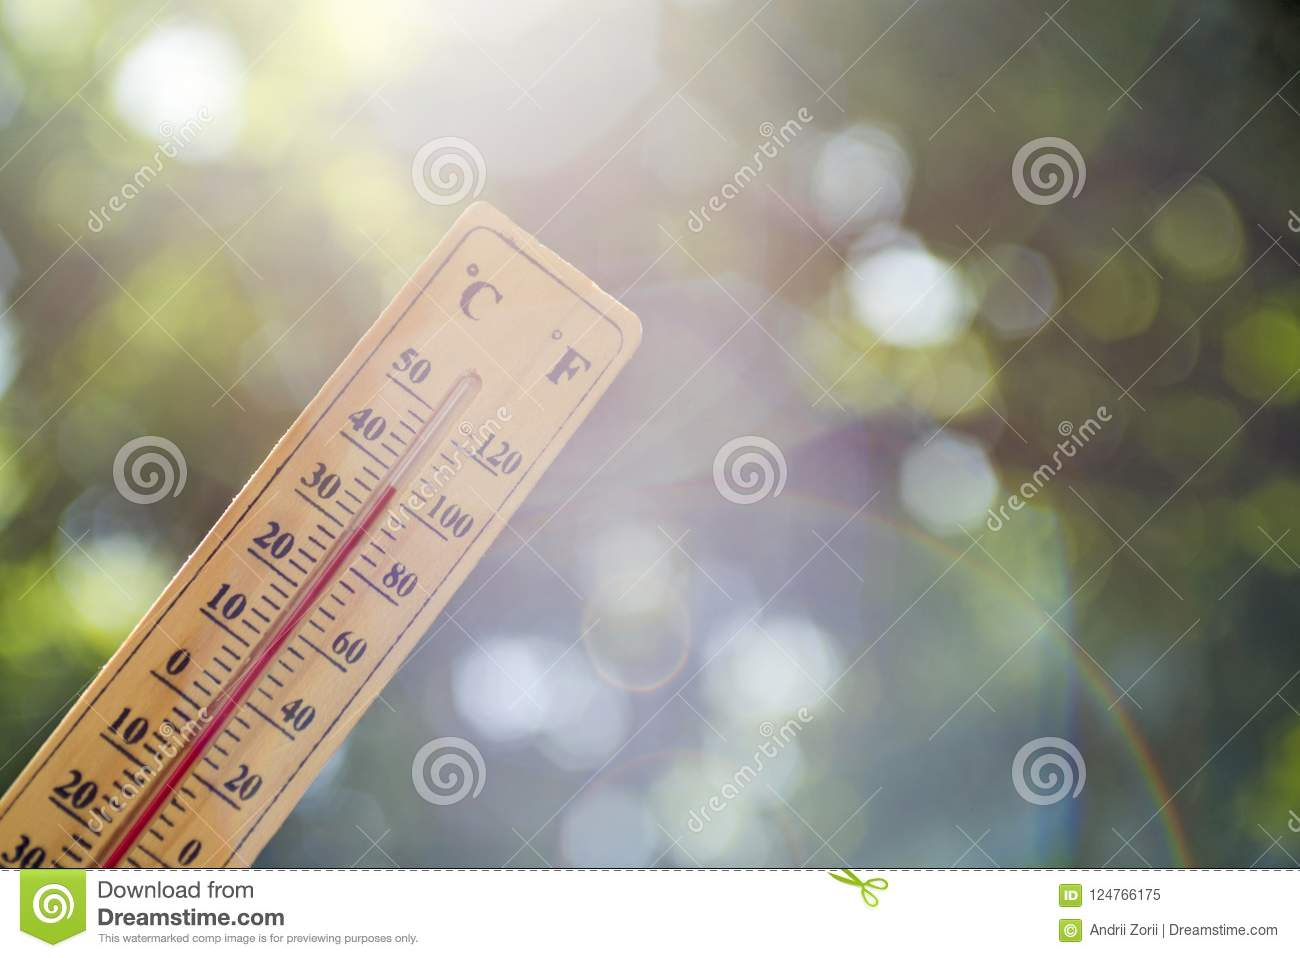 Thermometer pointing to the sky to symbolize the heat of summer